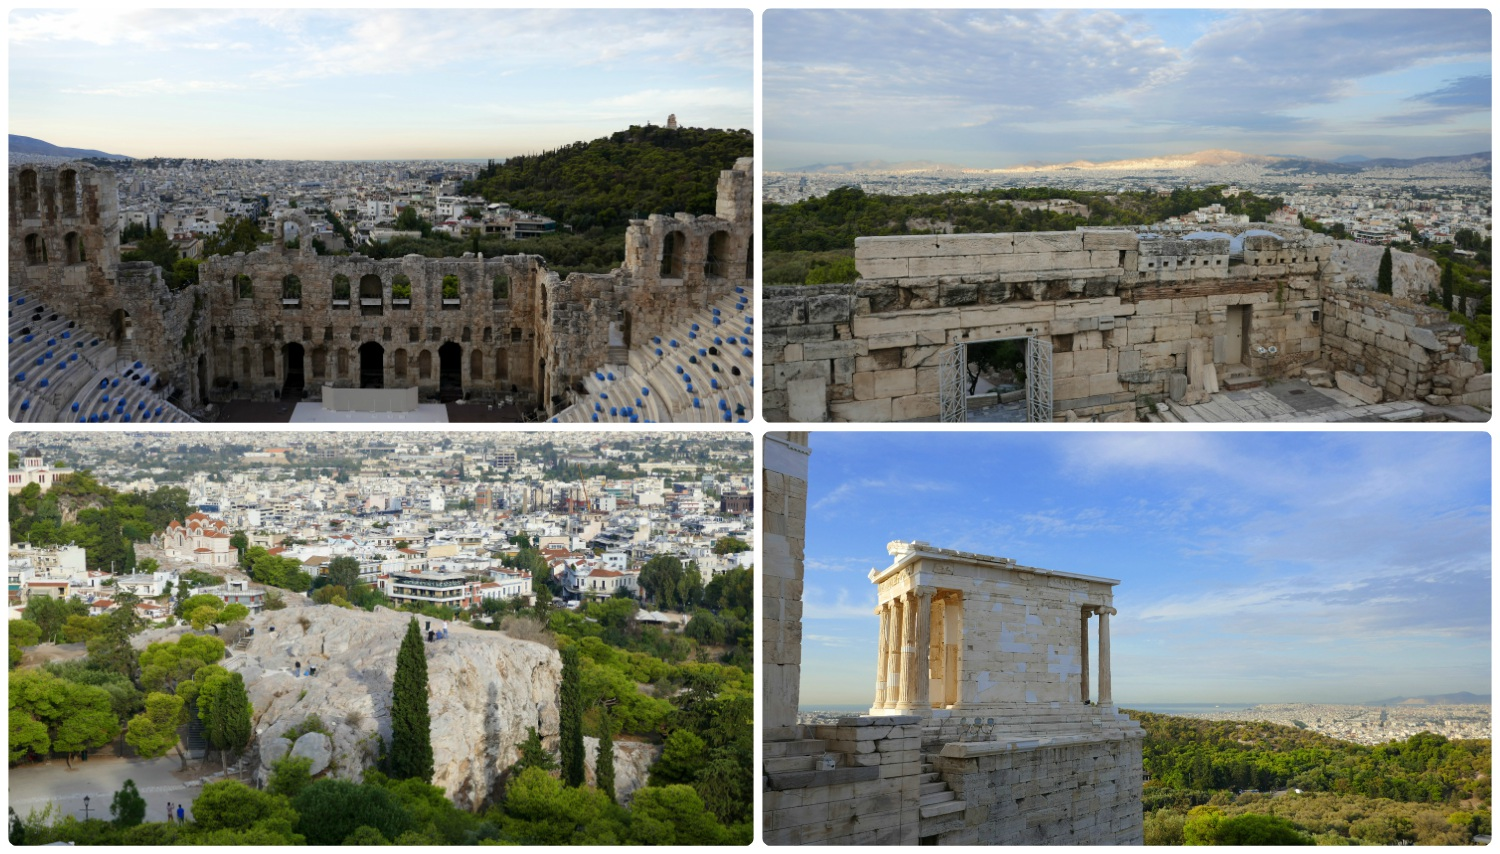 Clockwise (from the top left): Odeon of Herodes Atticus, Propylaea, Temple of Athena Nike, Mars Hill (Areopagus).